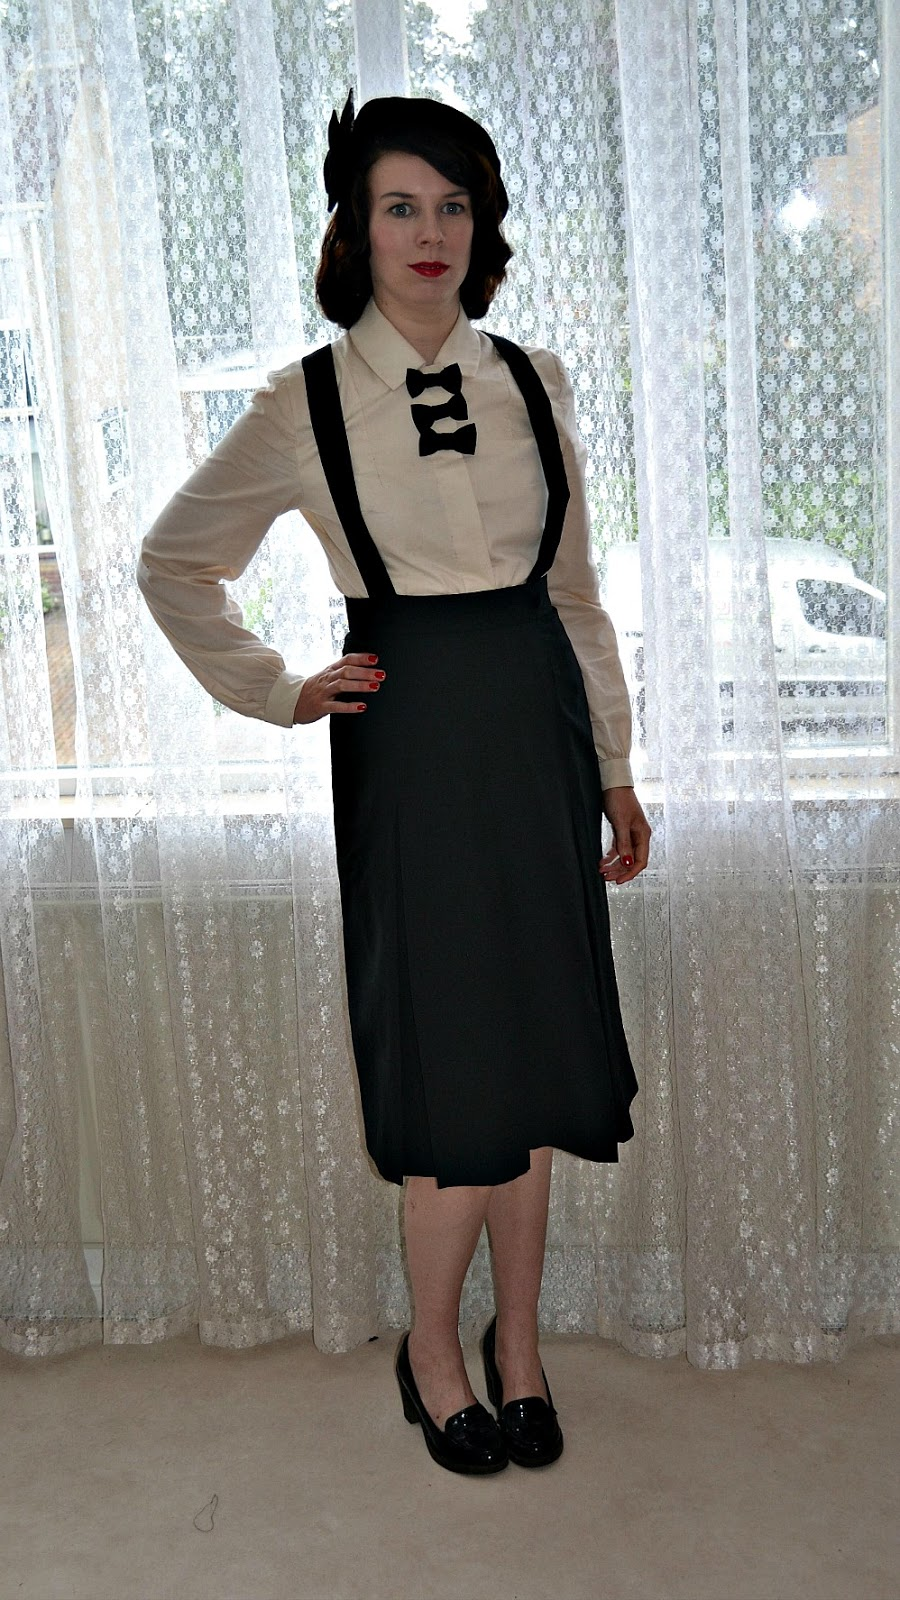 Mrs Depew 1028 beret, Lutterloh 31 and slef drafted suspender skirt made by Anthea